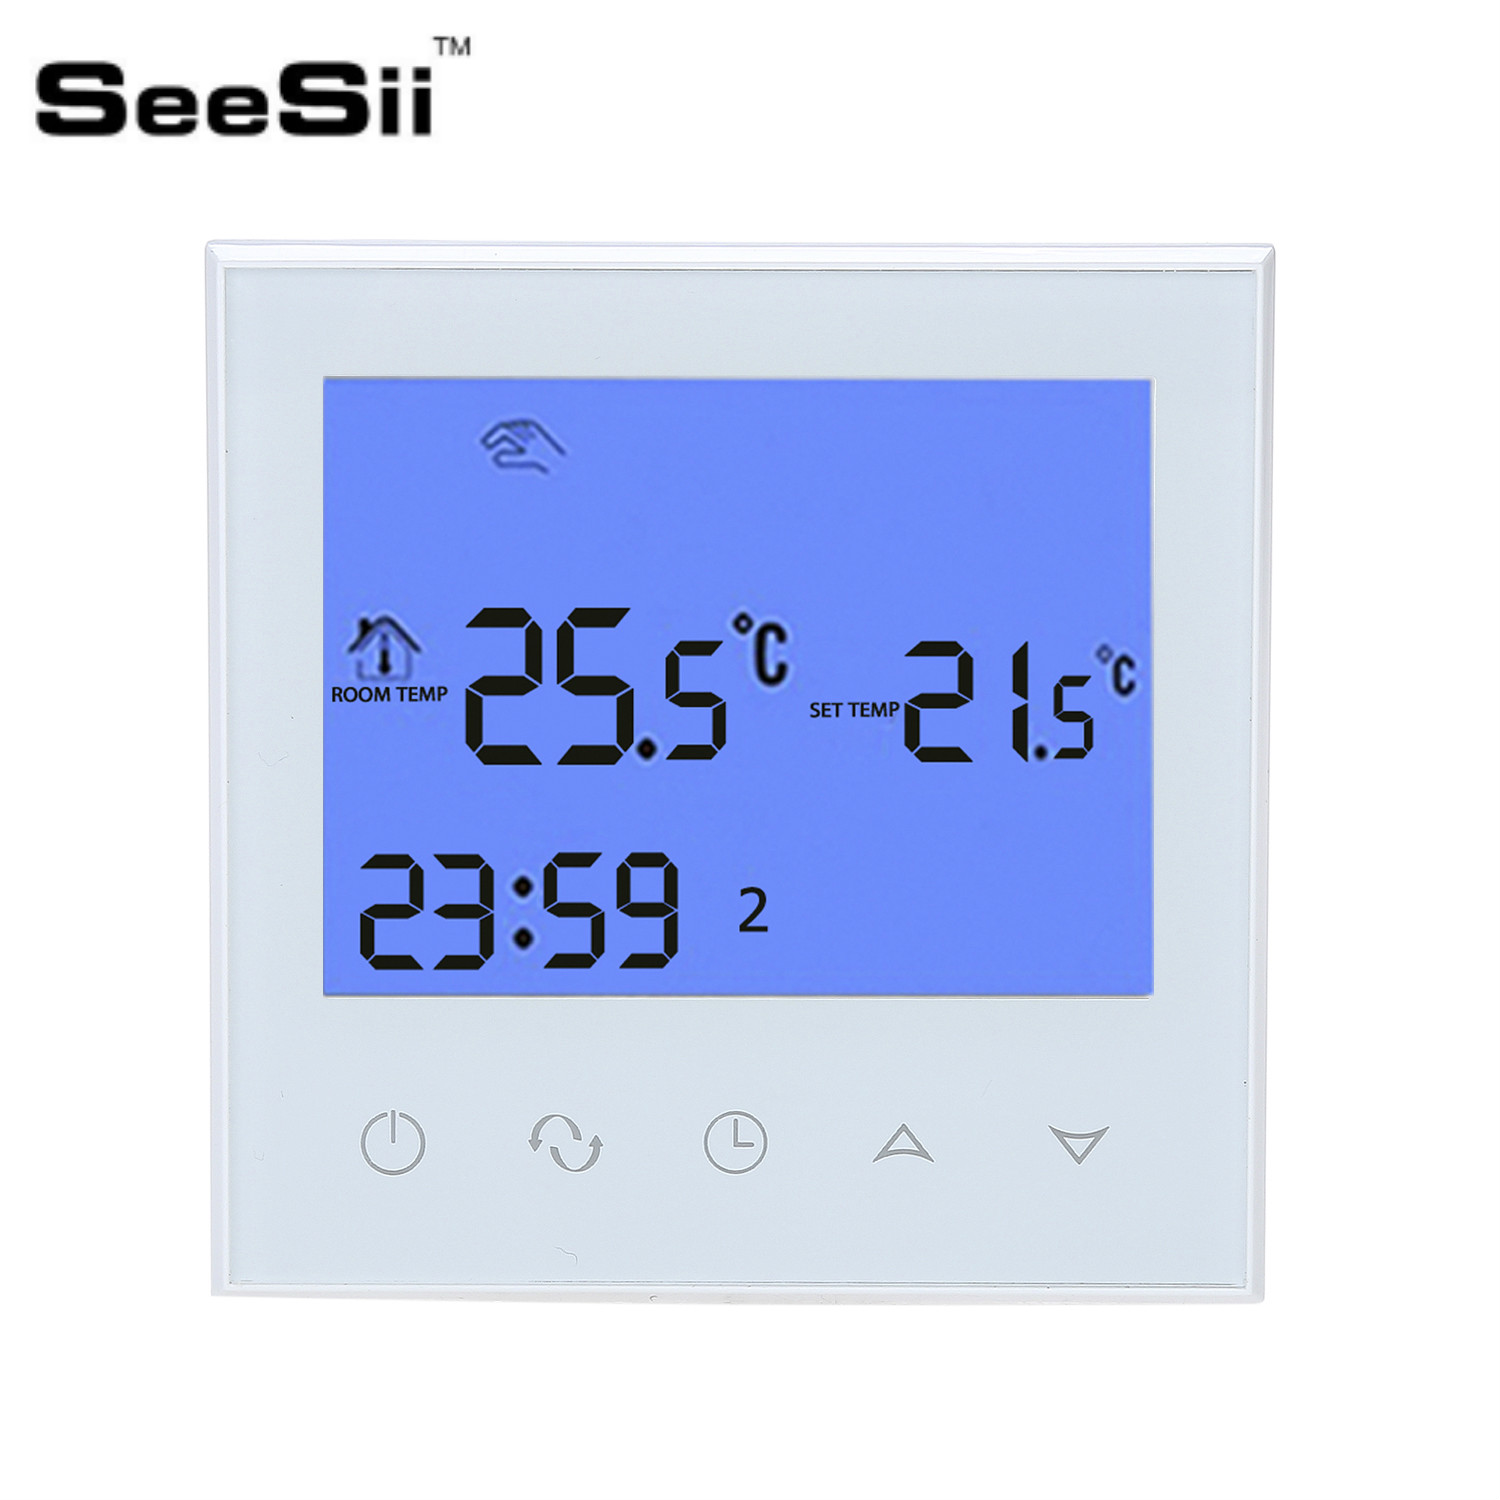 SeeSii Programmable Thermostat Heating Temp WiFi LCD Touch Screen Temperature Control Underfloor 16A 230V Remote valve radiator linkage controller weekly programmable room thermostat wifi app for gas boiler underfloor heating